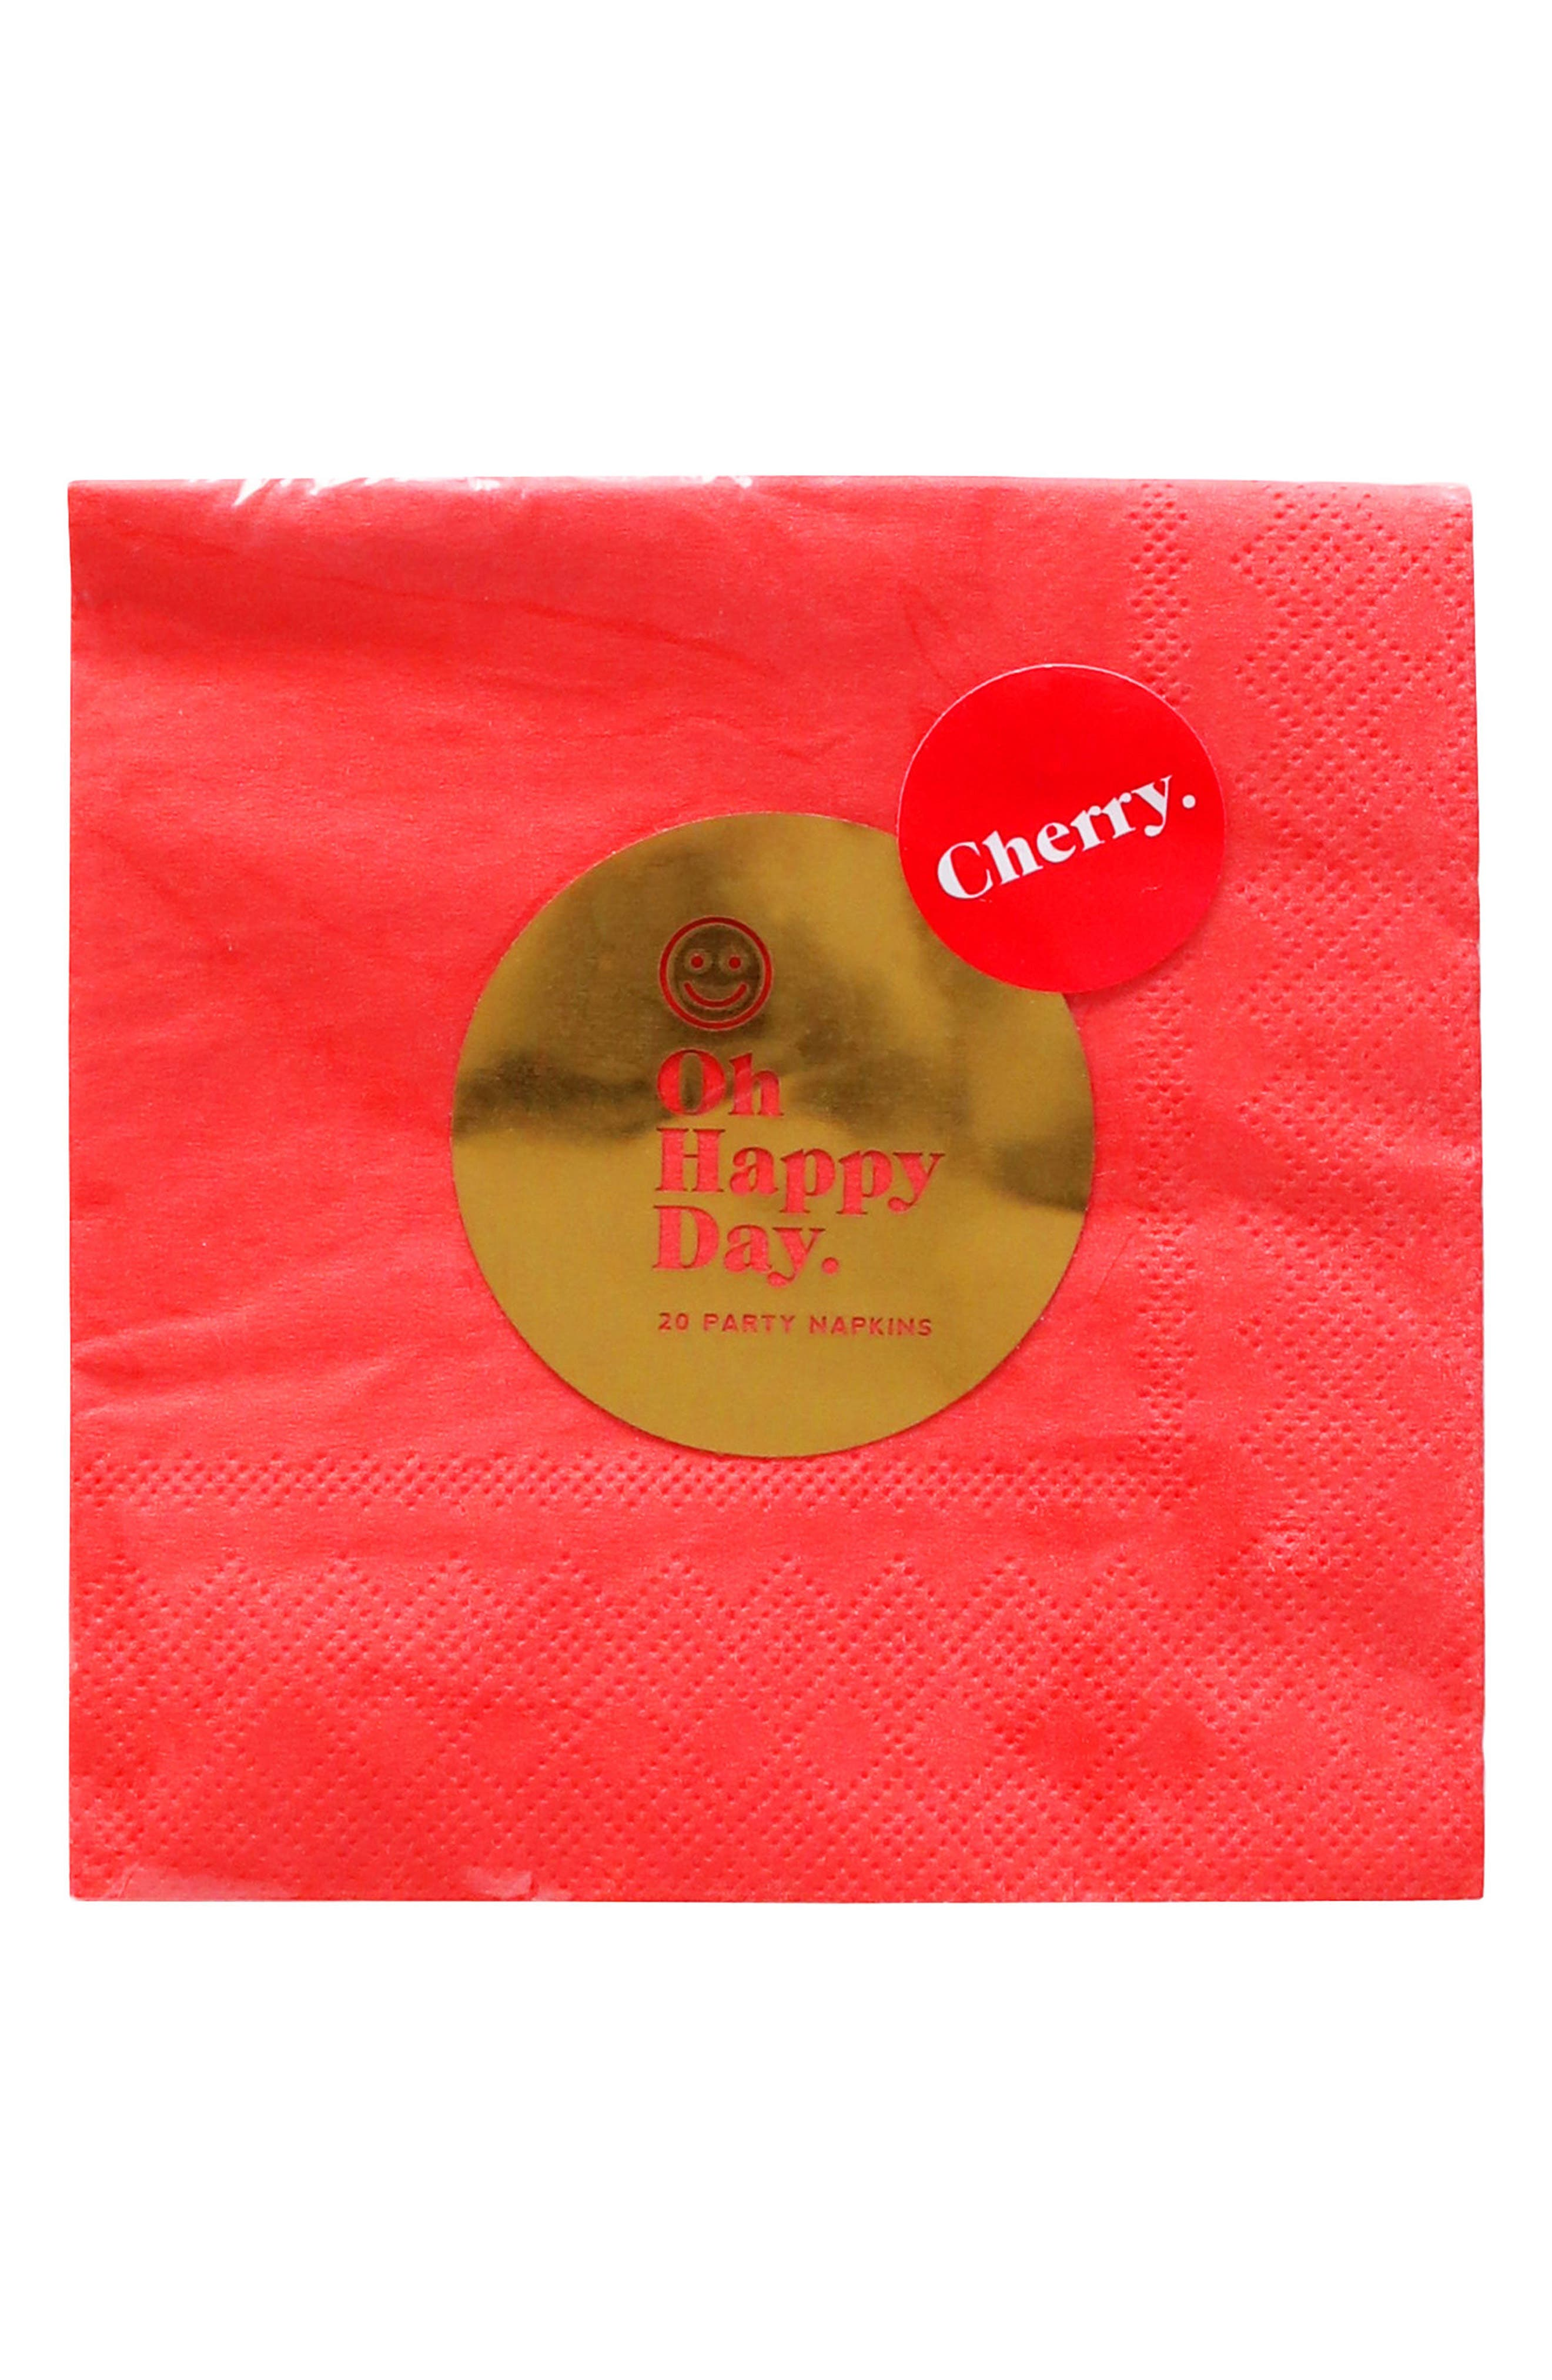 Oh Happy Day Cherry Paper Cocktail Napkins